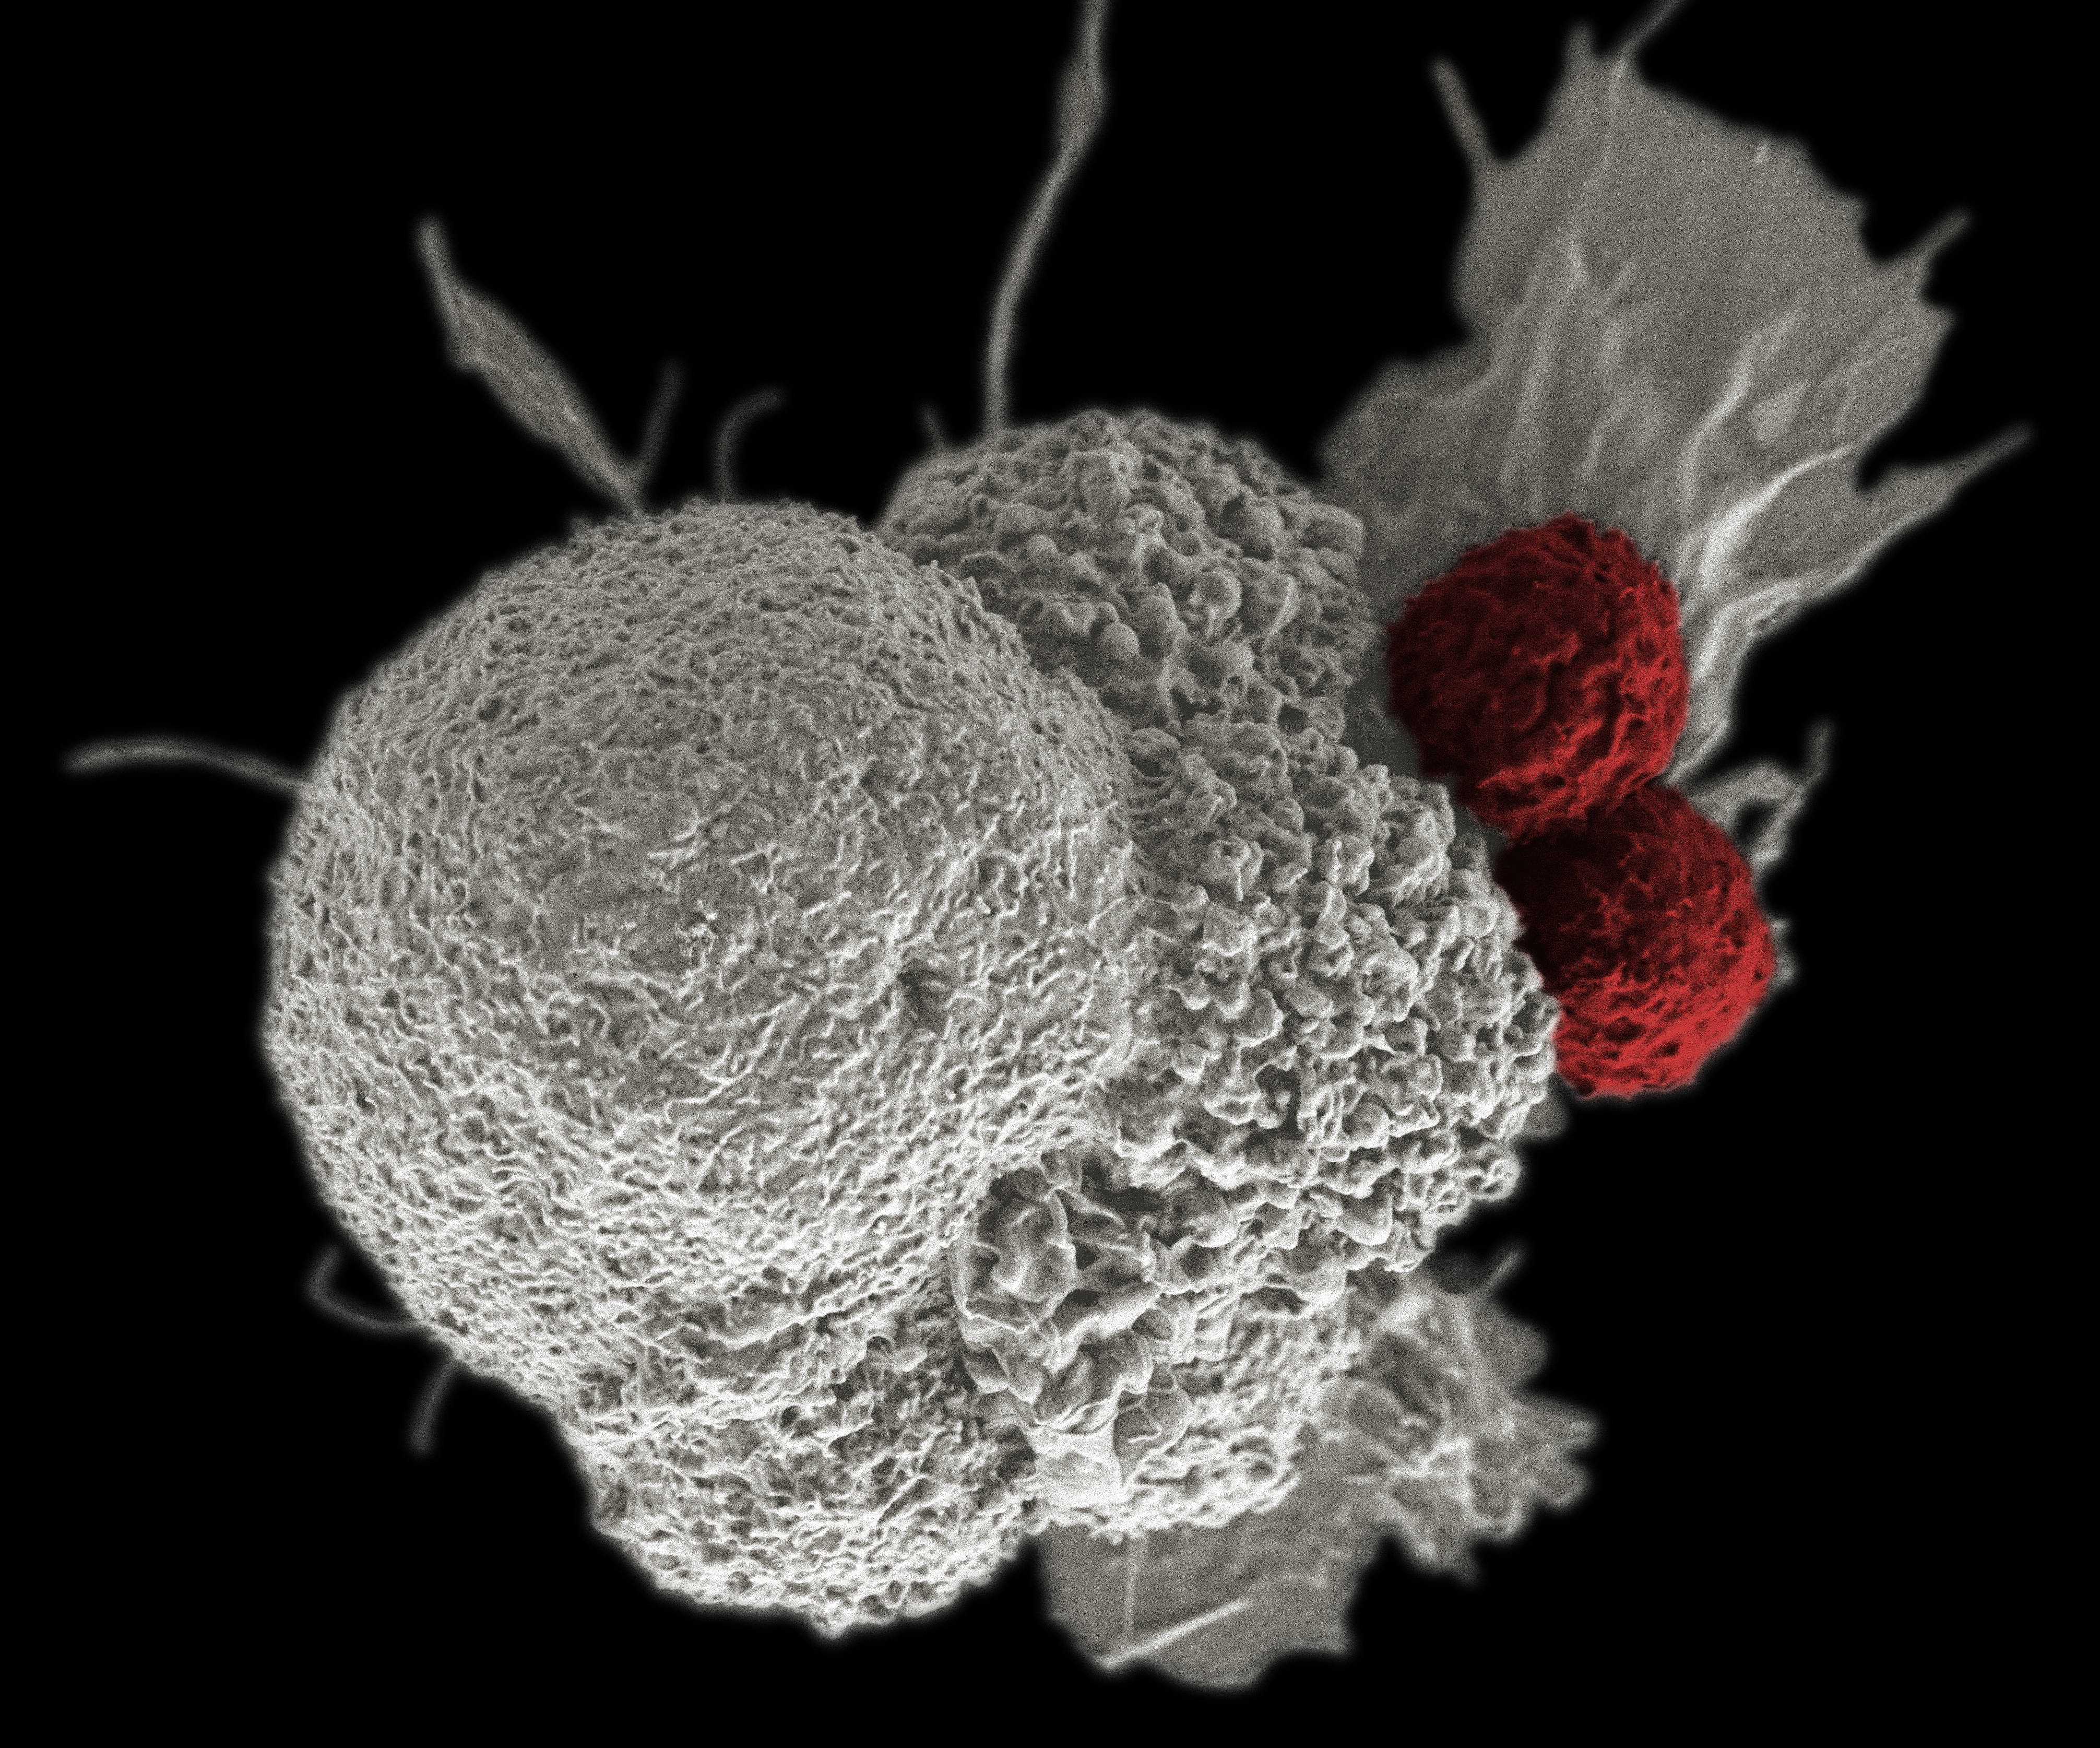 immune cells attacking cancer cells